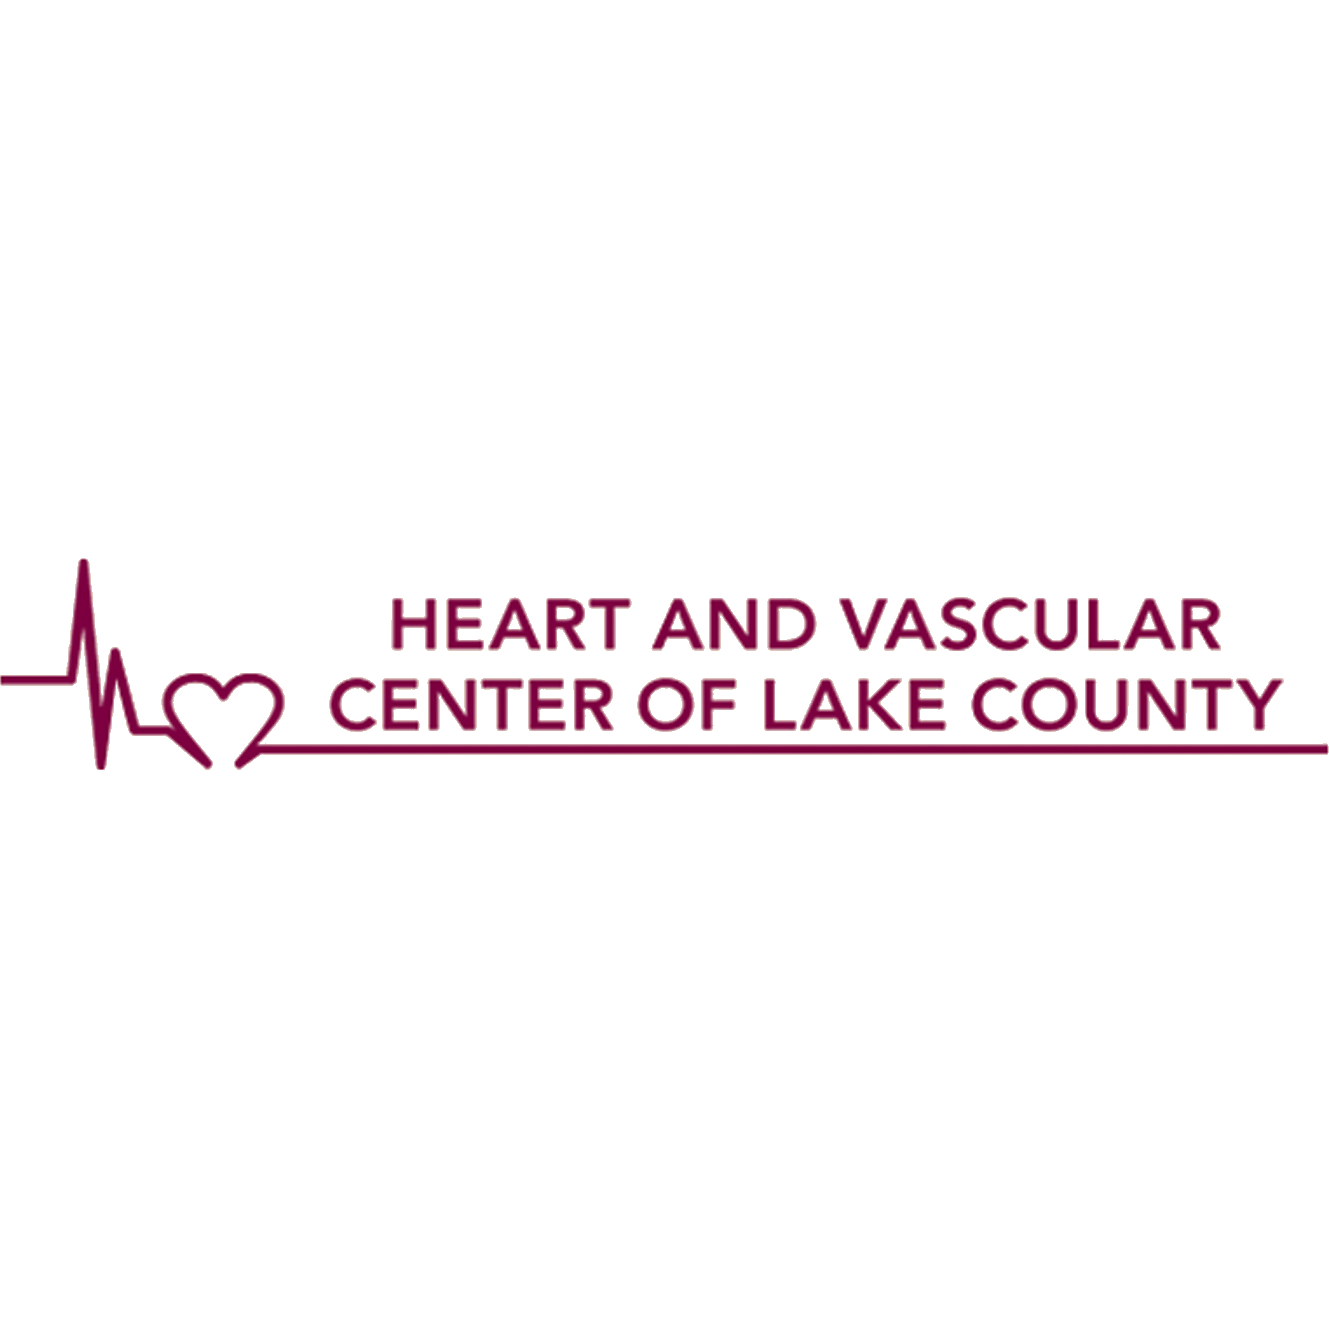 Heart and Vascular Center of Lake County